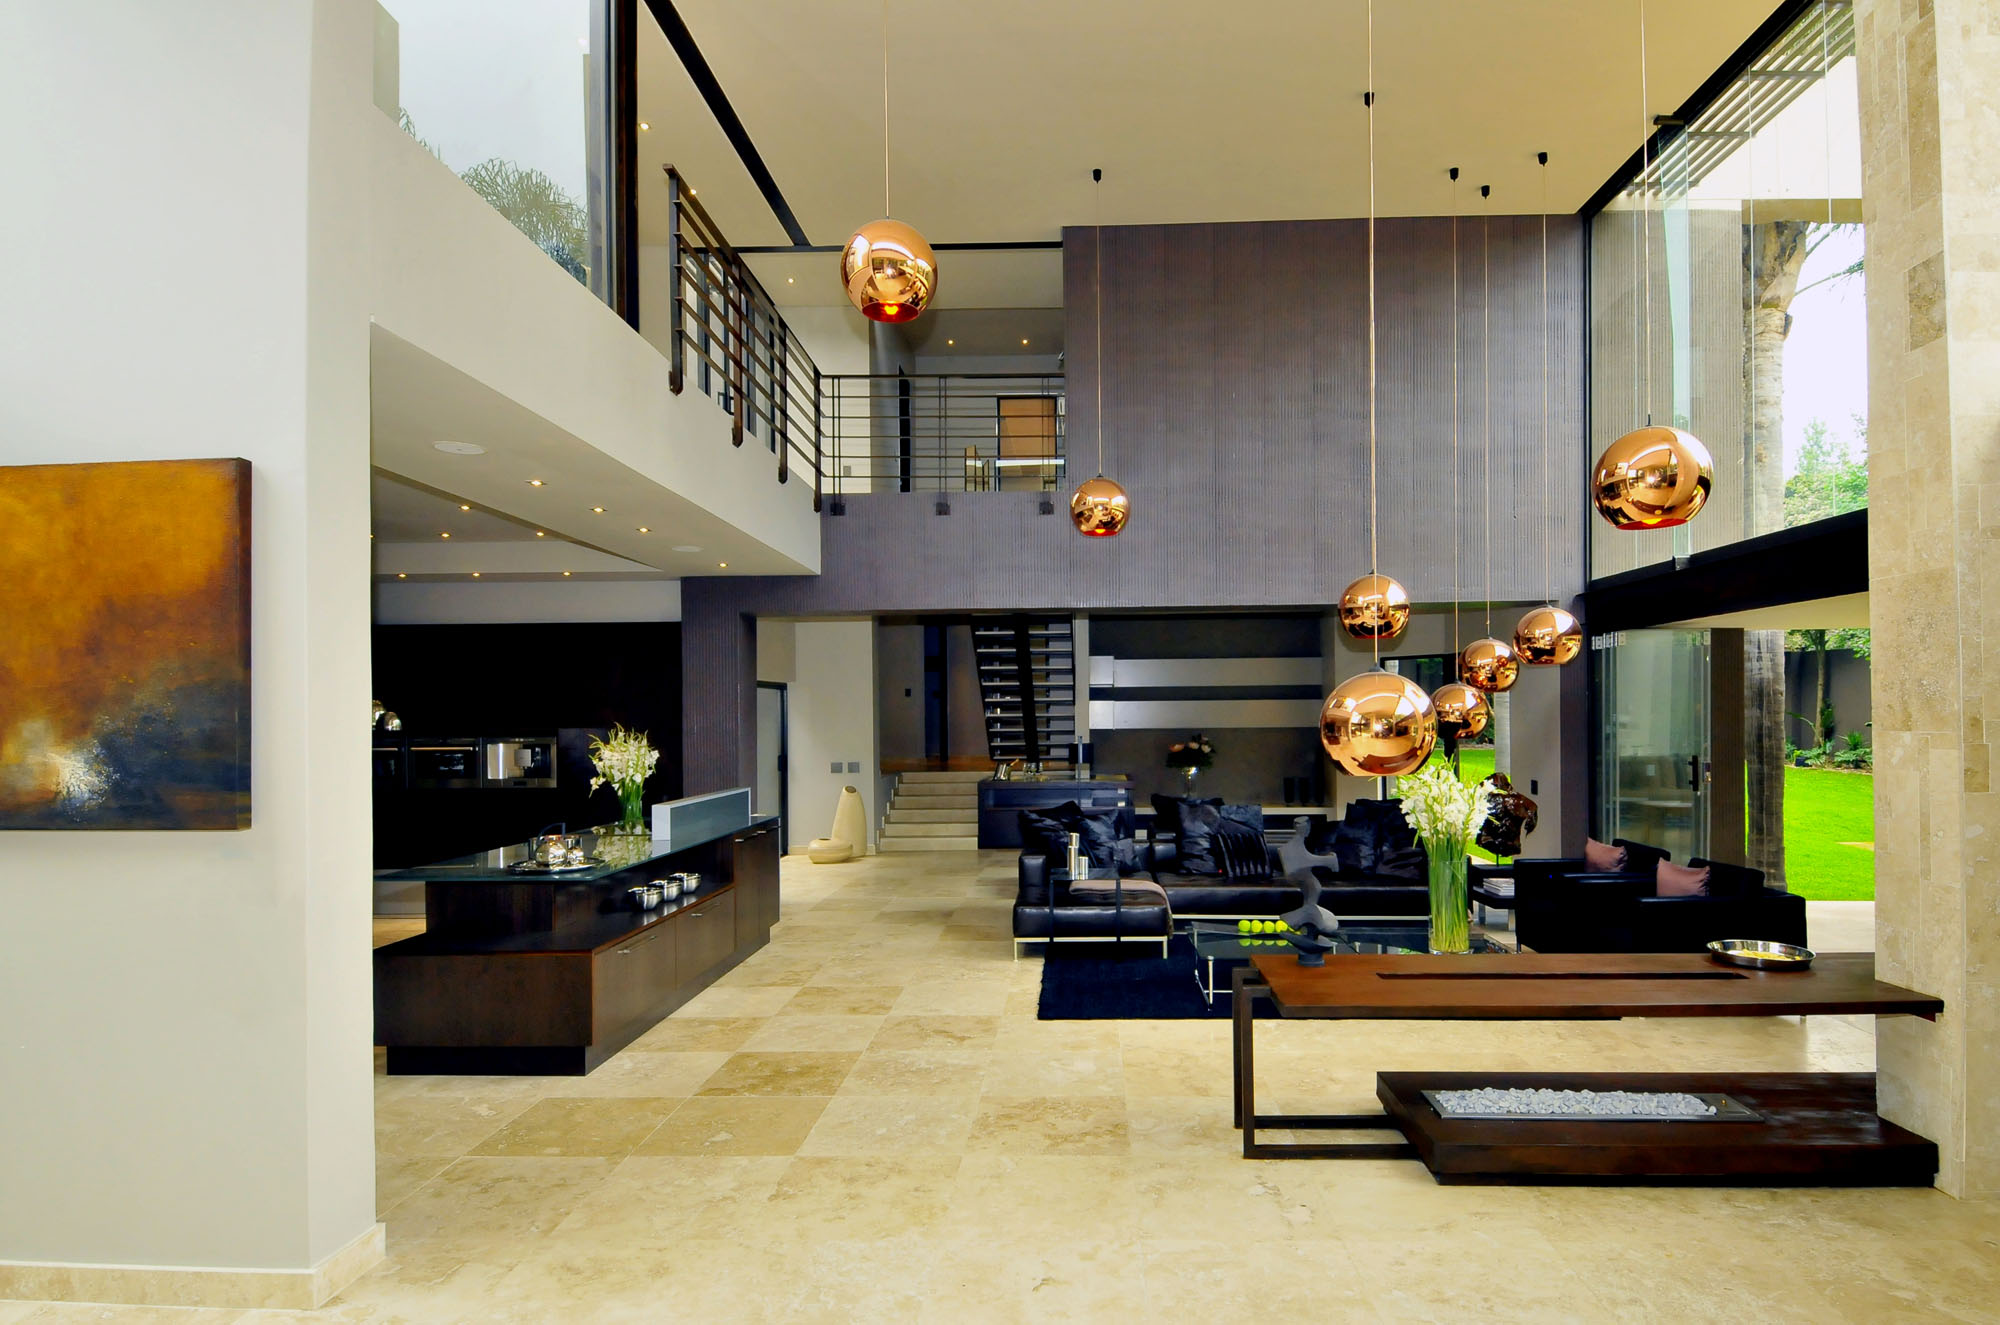 Brian Road Morningside By Nico Van Der Meulen Architects Architecture Design